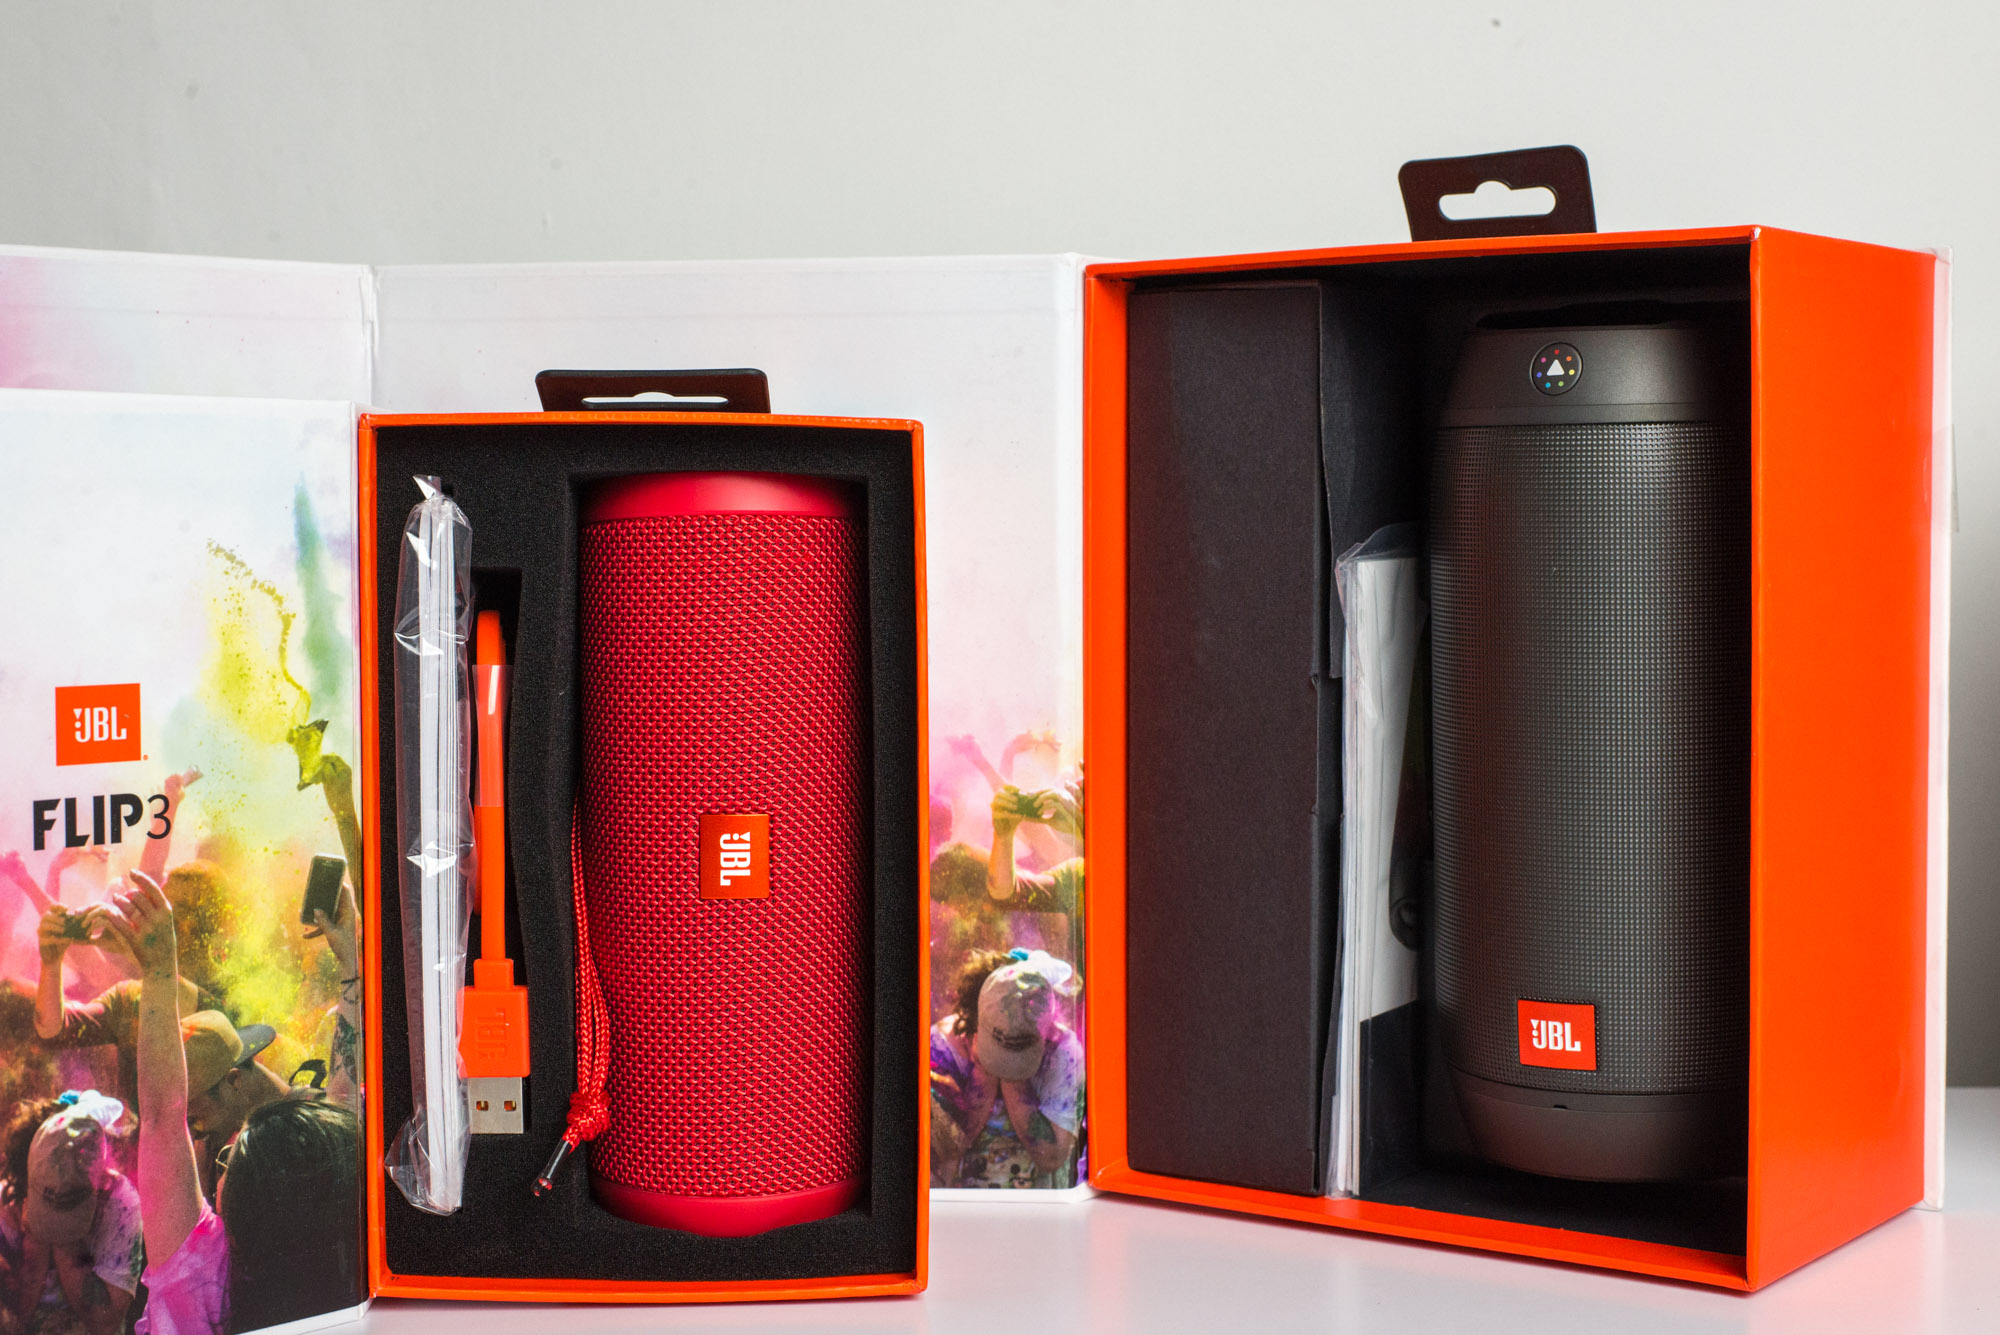 Jbl flip 3 i jbl pulse 2 recenzja spider 39 s web for Housse jbl pulse 3